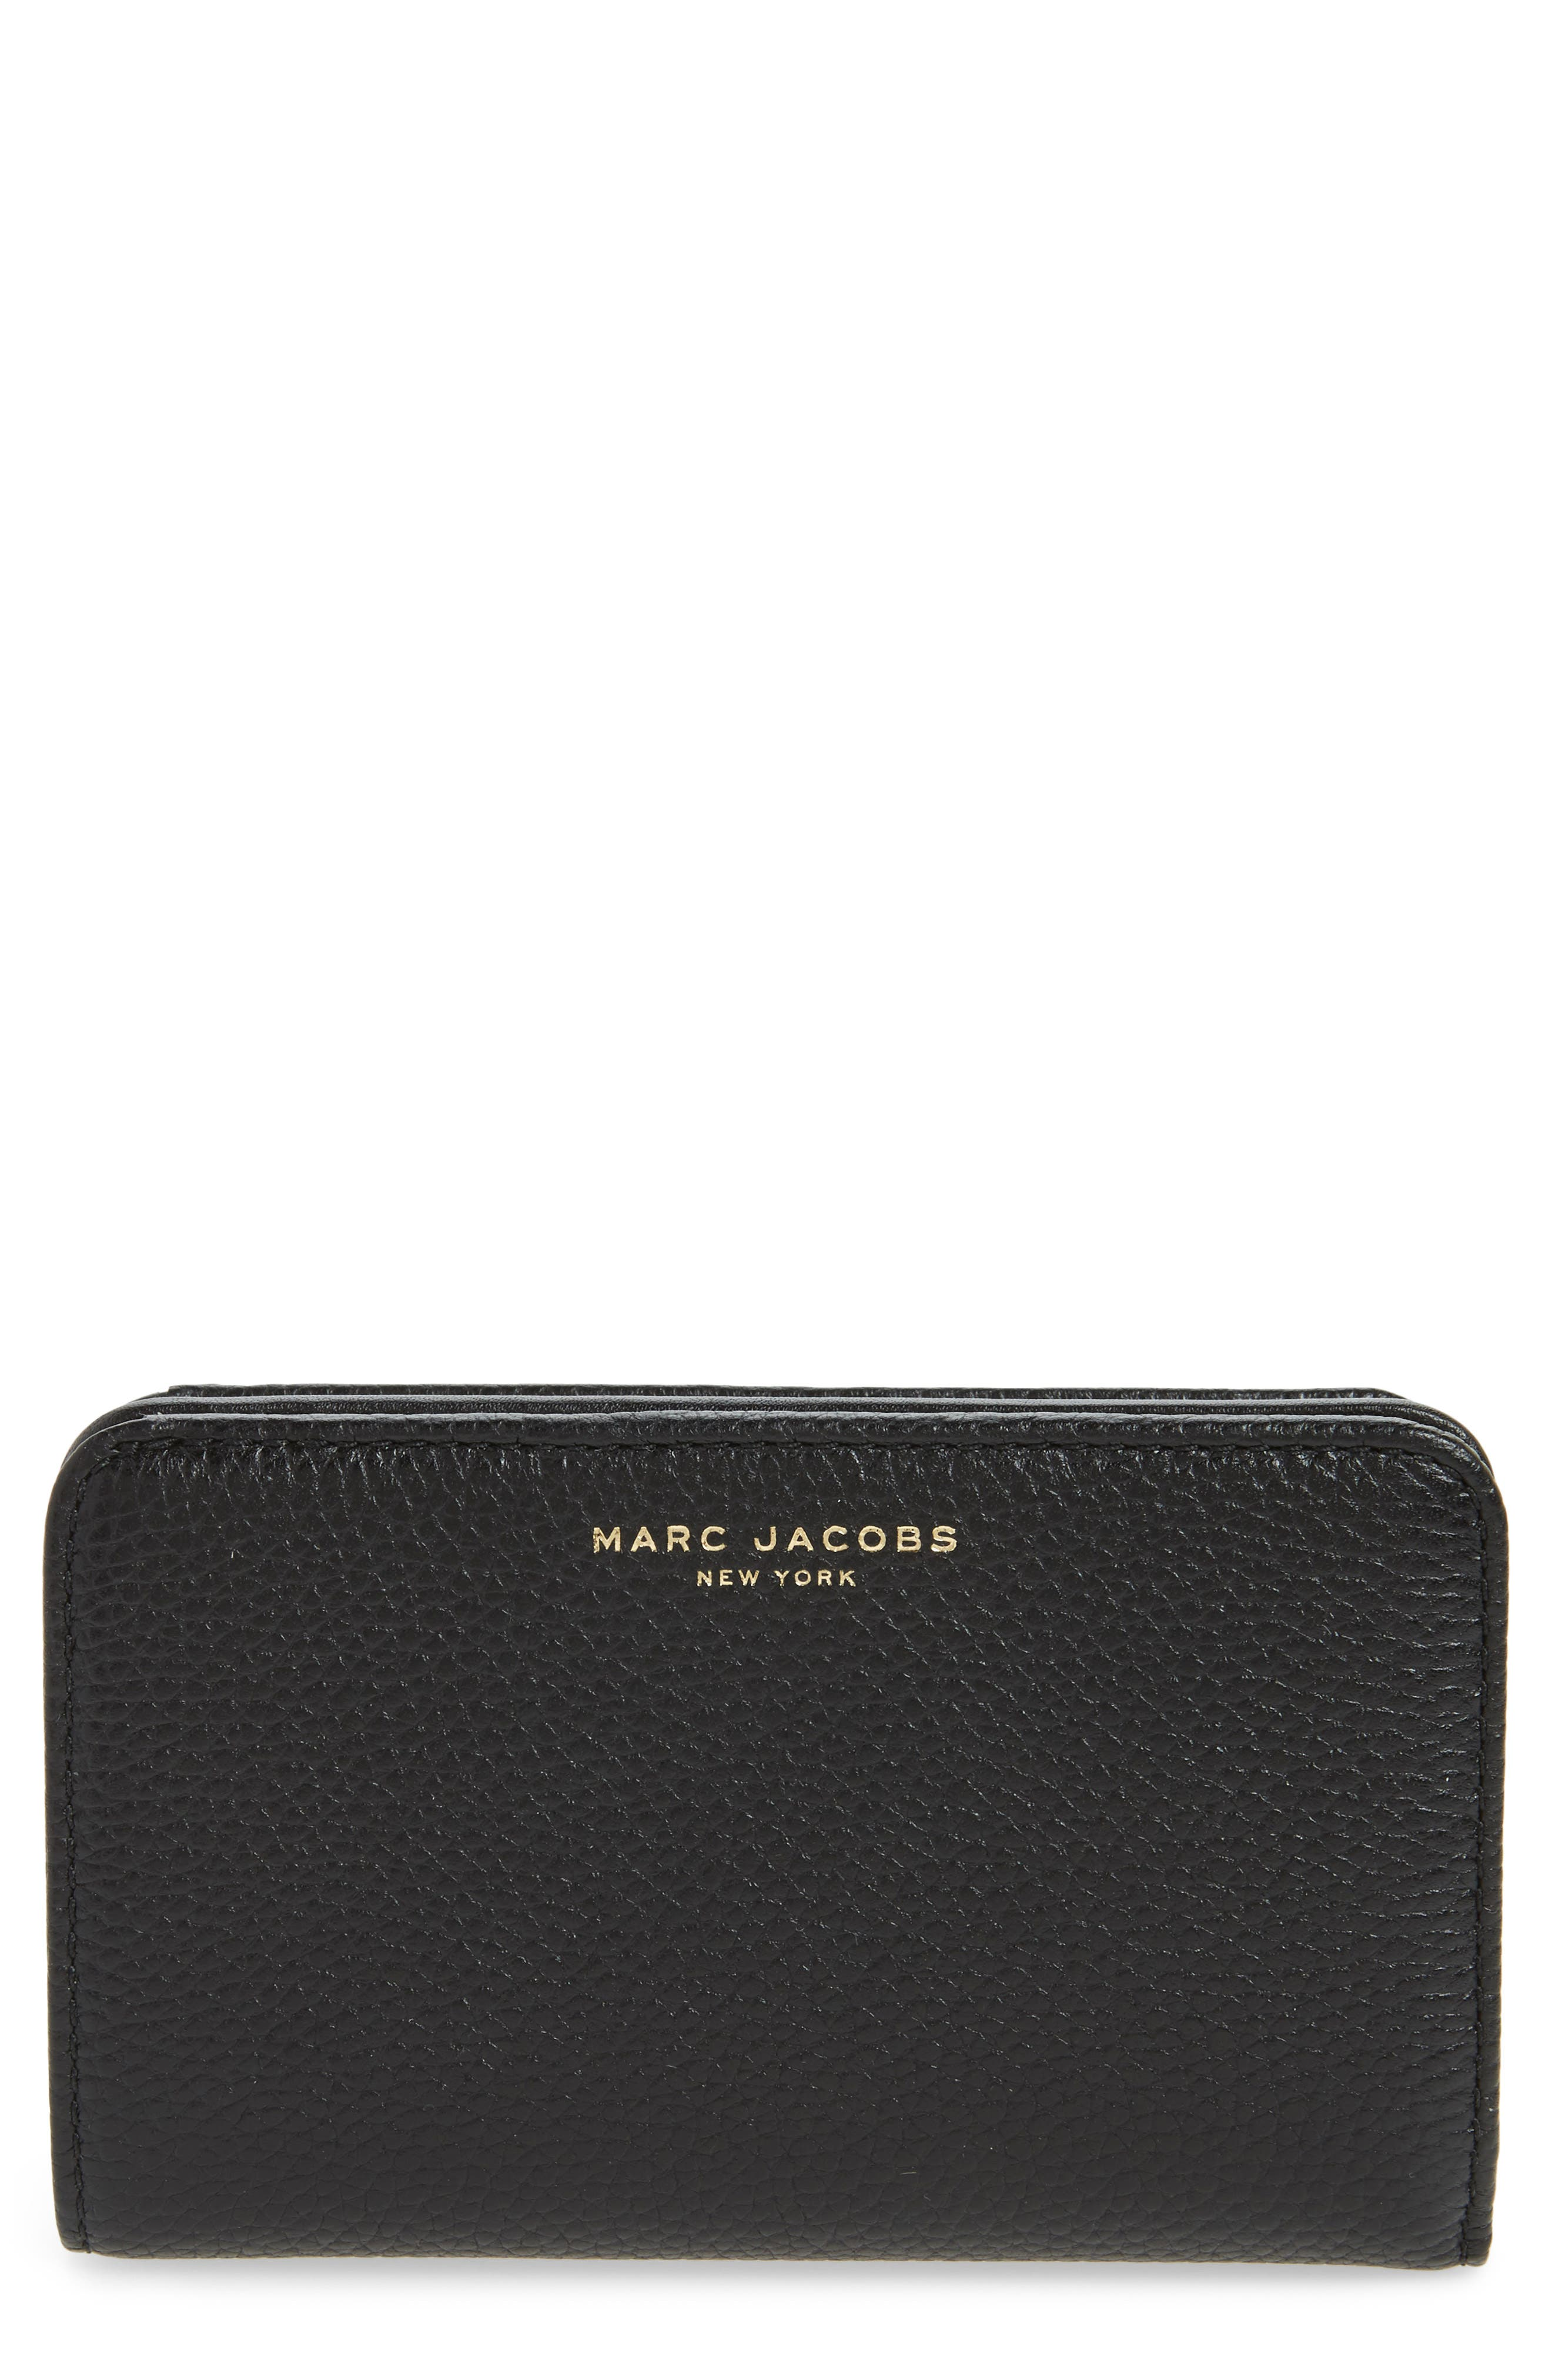 Gotham Compact Leather Wallet,                             Main thumbnail 1, color,                             Black/ Gold